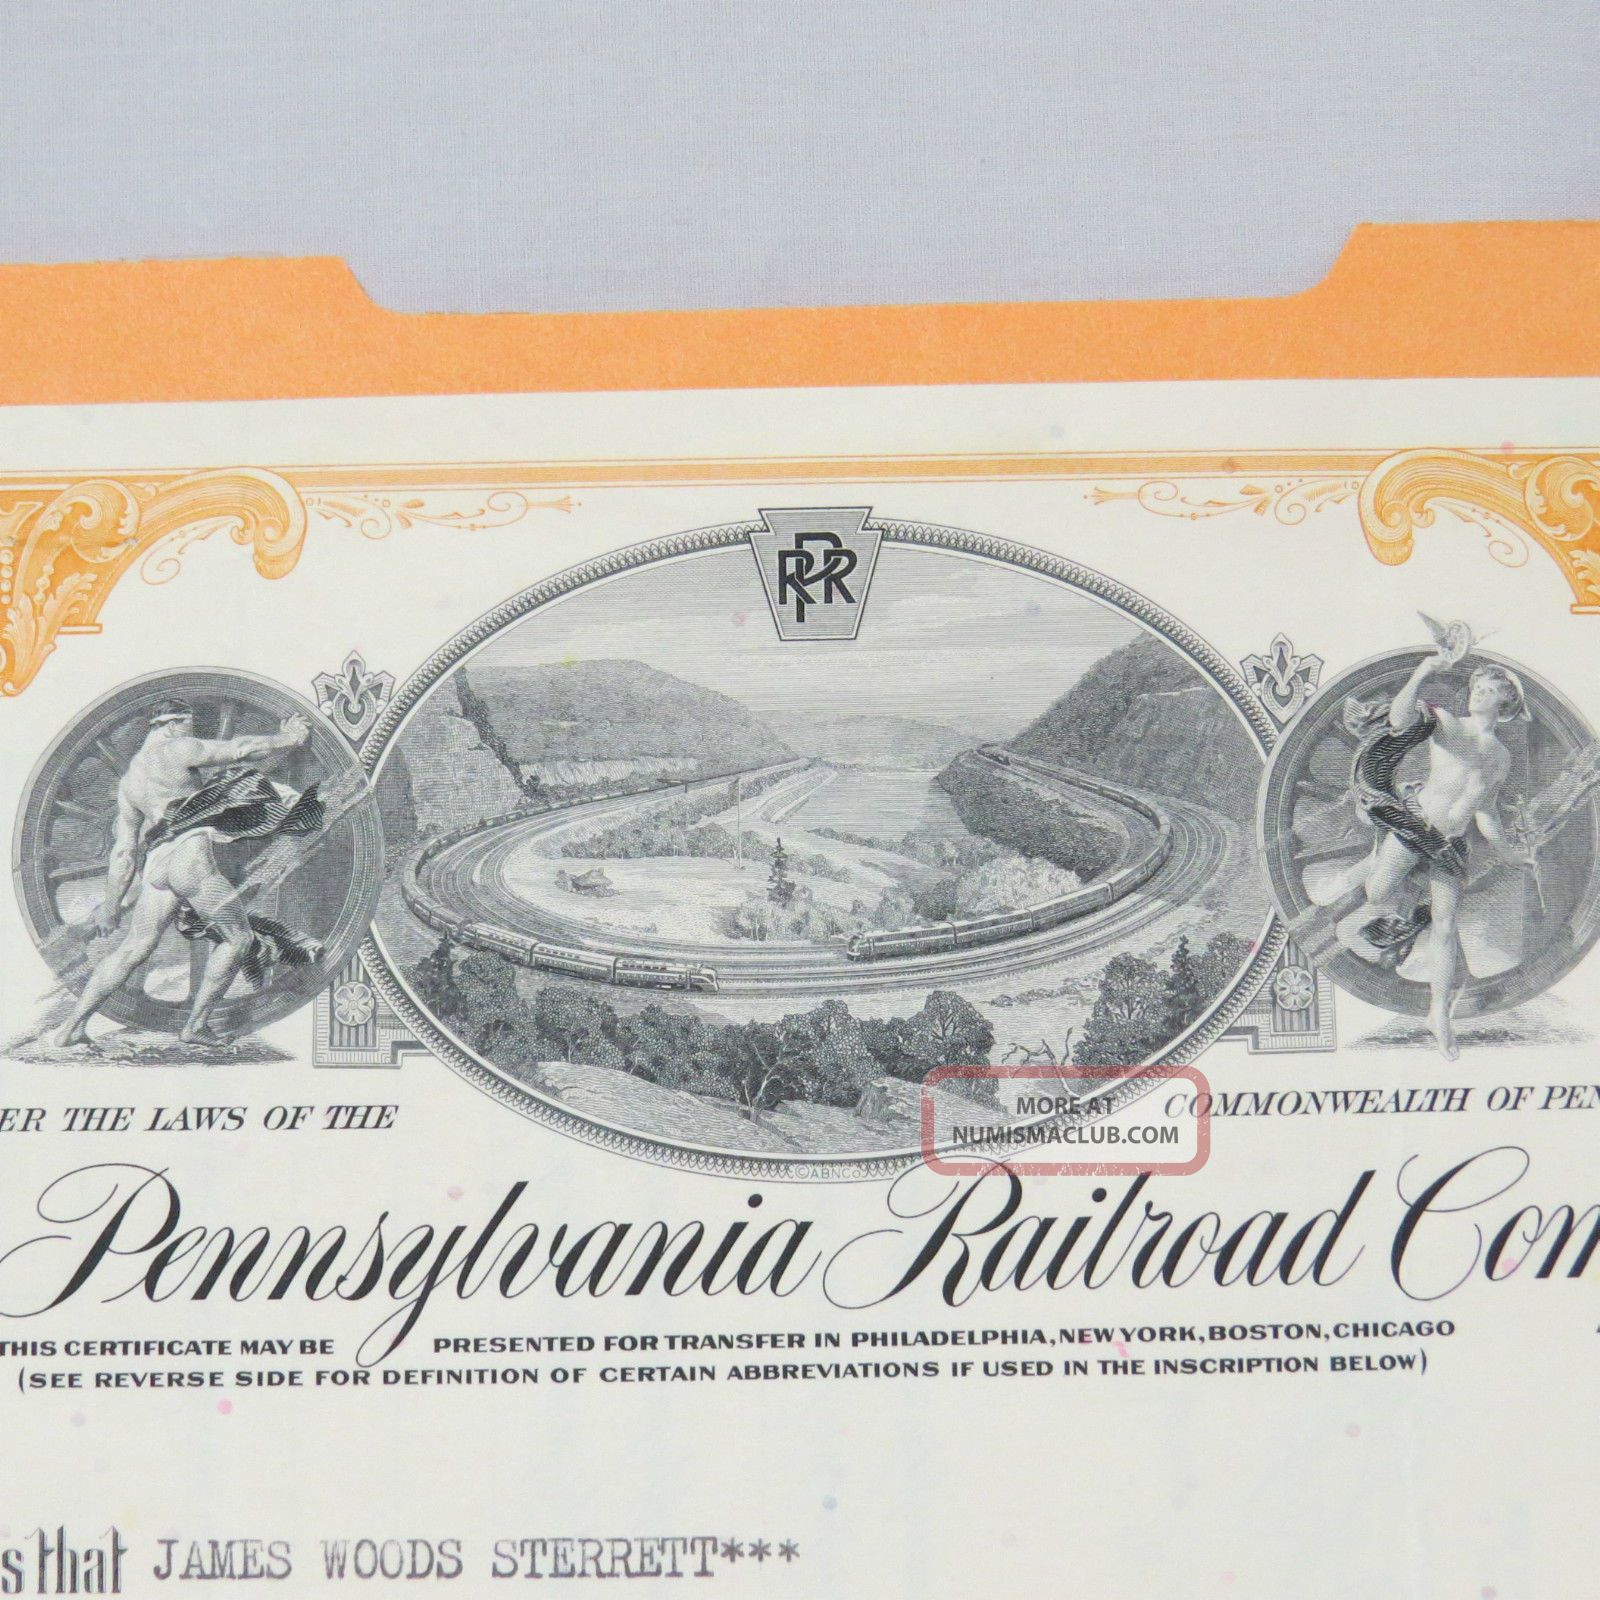 1966 Pennsylvania Railroad Company Stock Certificate 22 Shares James